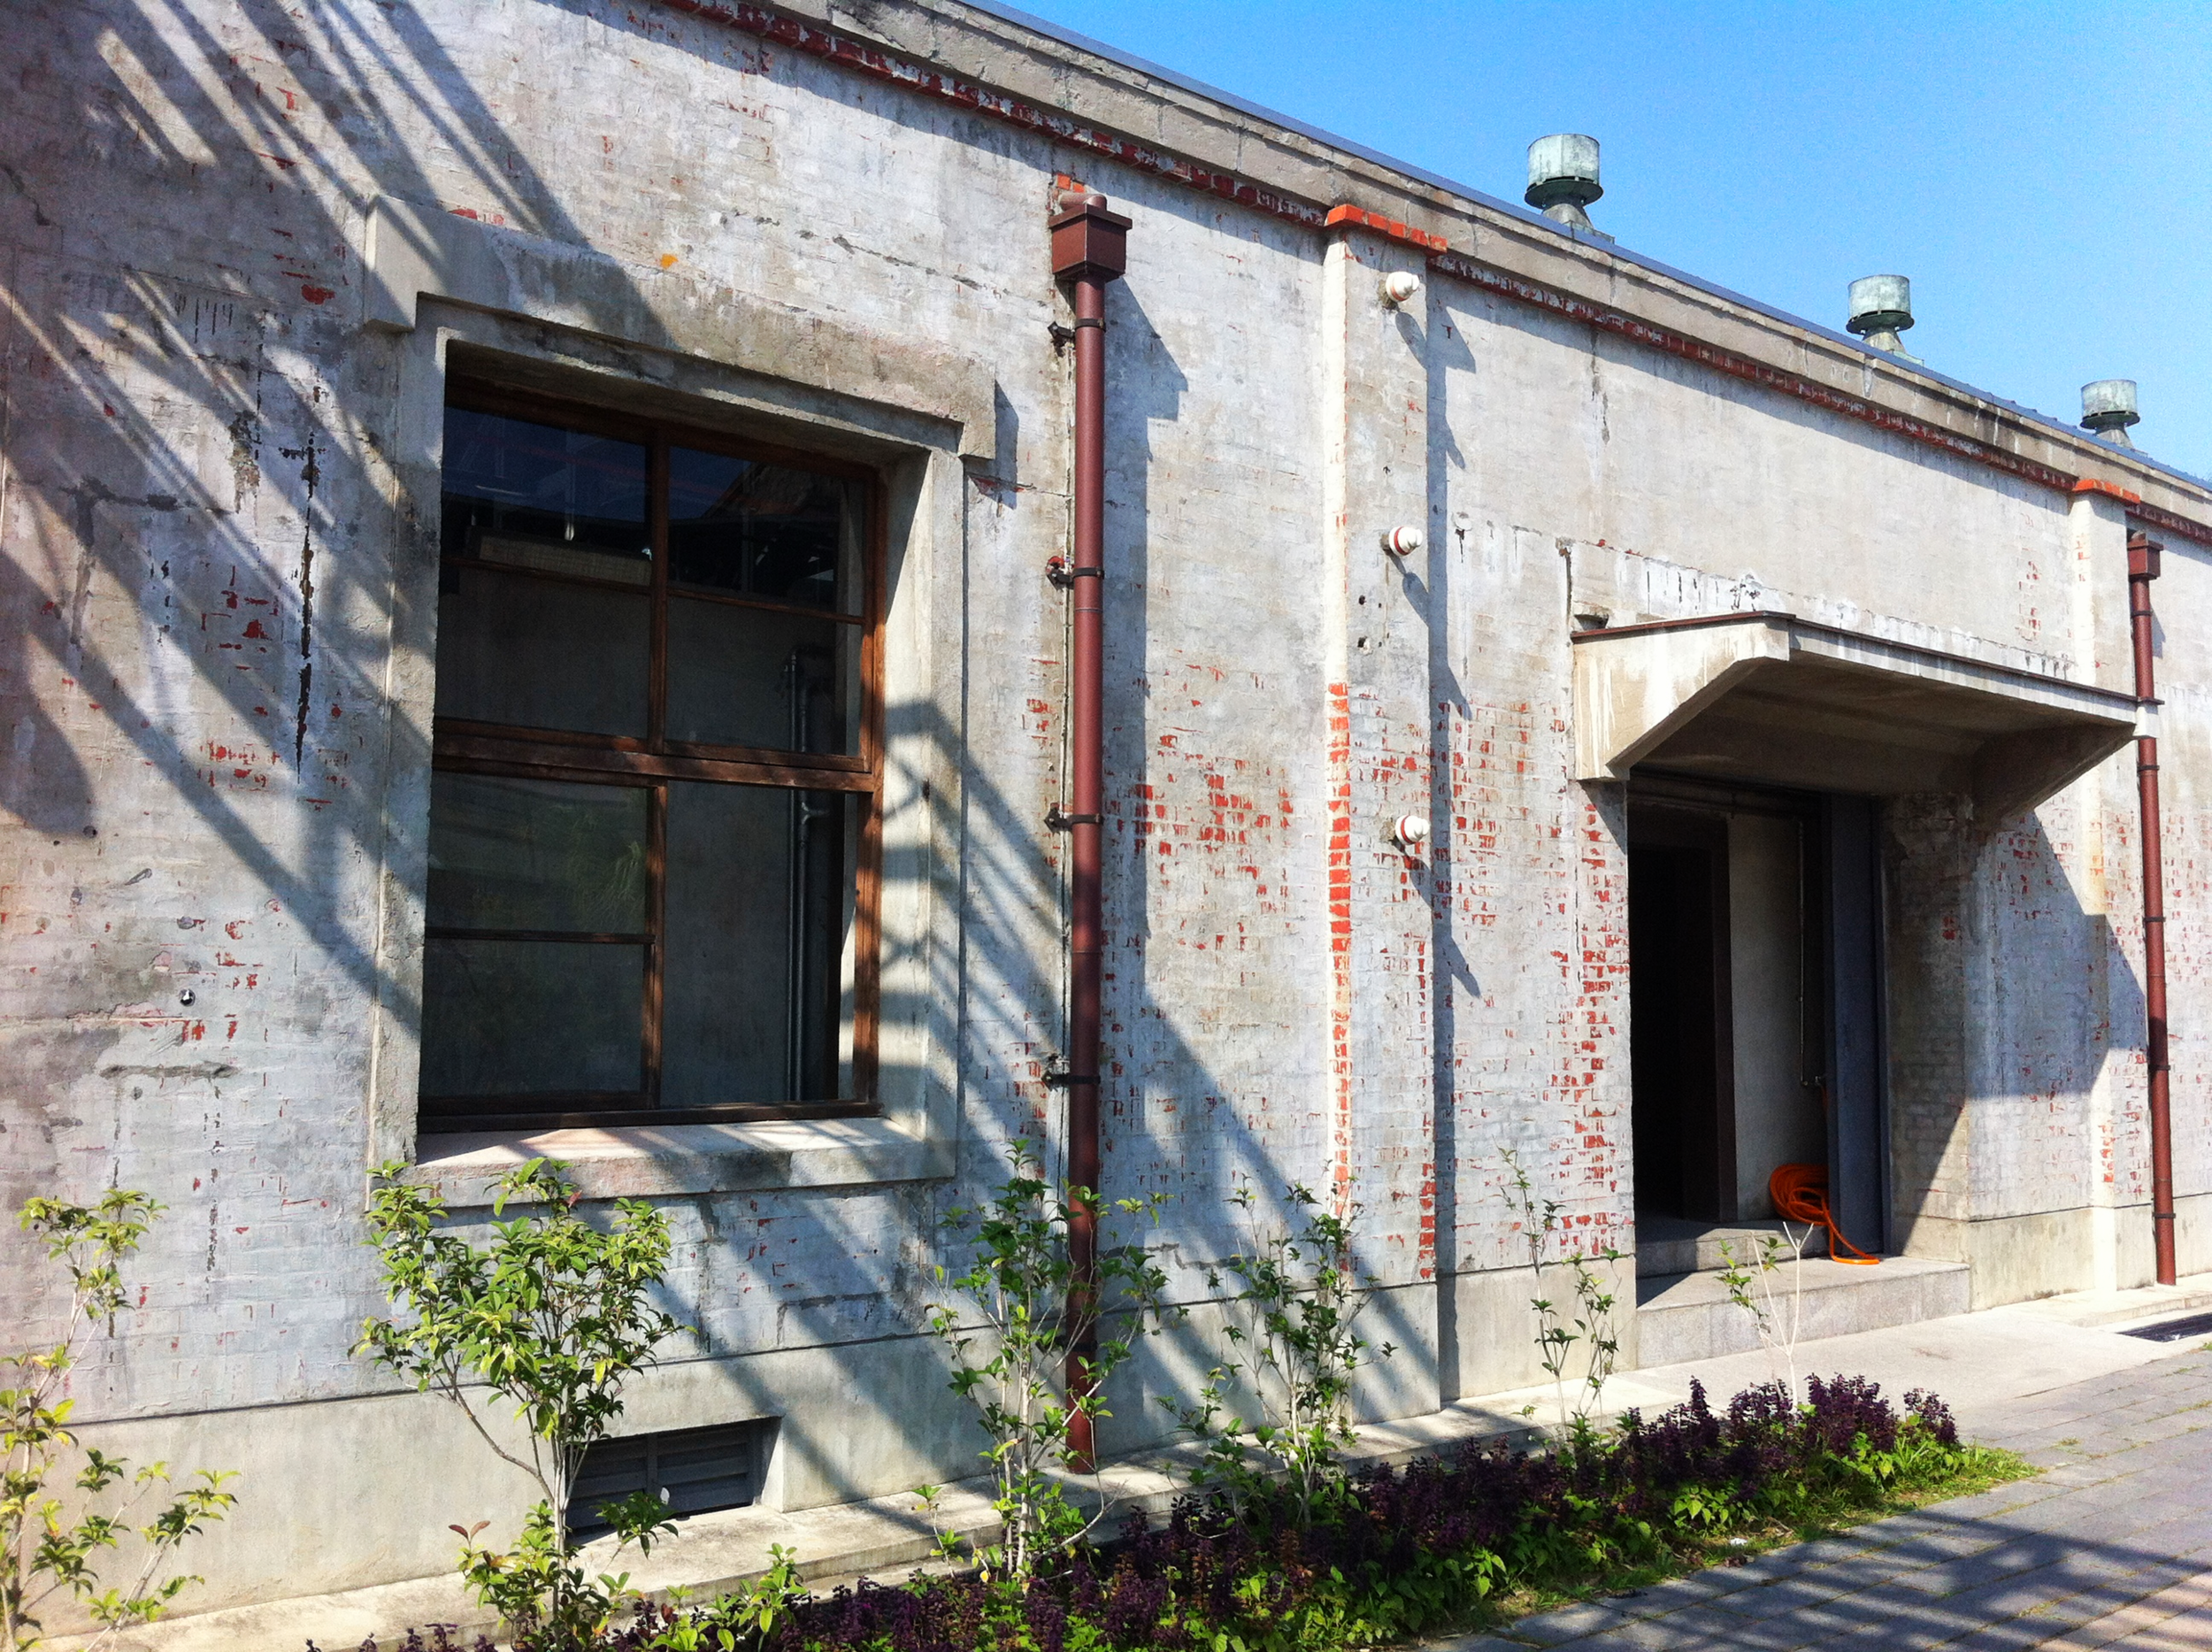 an old liquor factory, now reclaimed as a cultural events space.